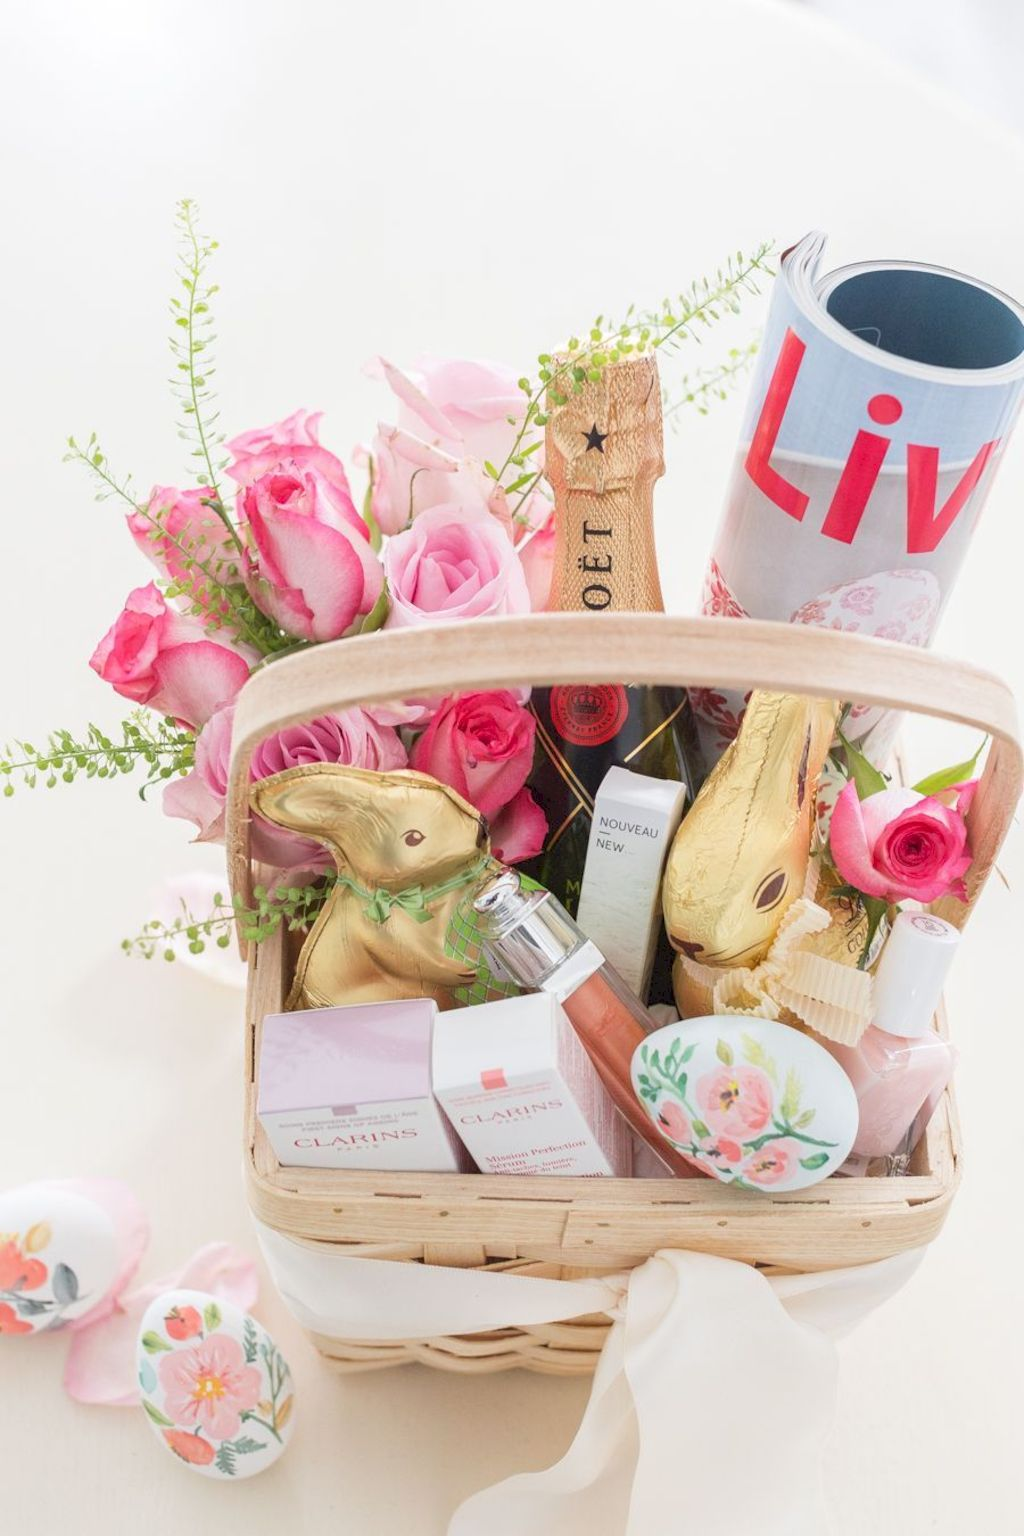 DIY Easter basket ideas made from affordable and recycled materials very charming as Spring celebration accessories Image 9